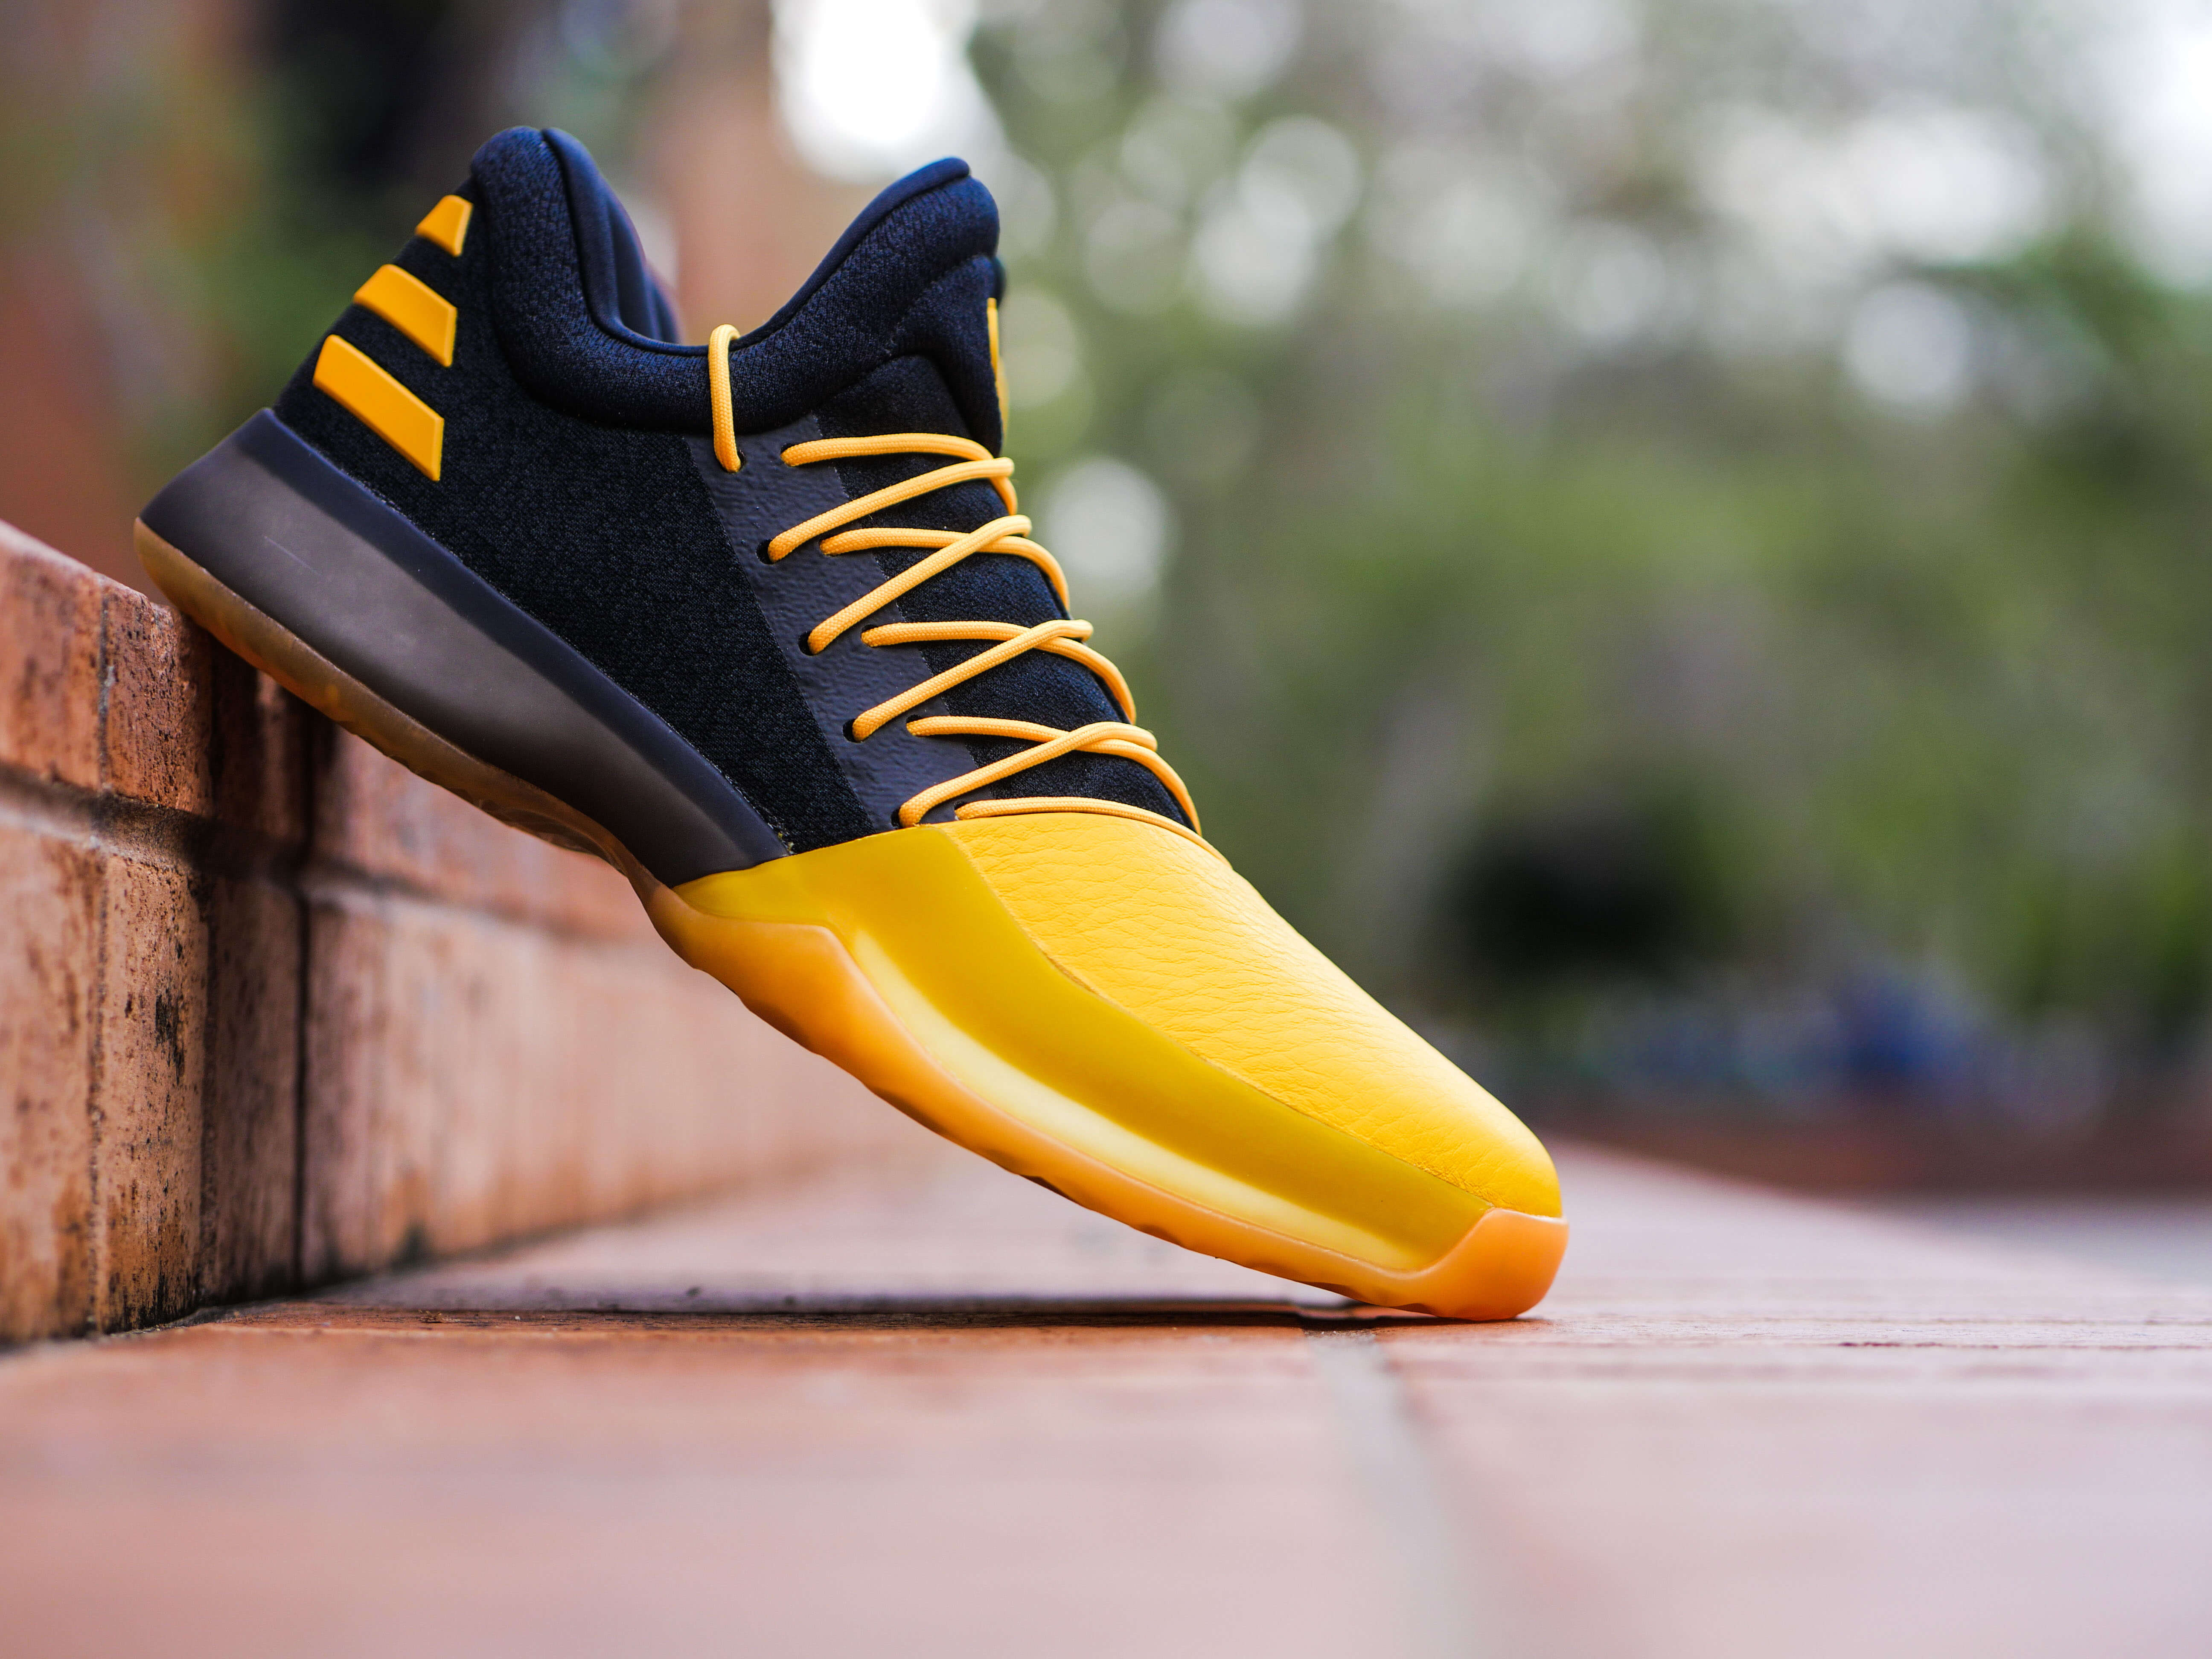 The Harden Vol. 1 Fear the Fork edition is designed with a black knit upper  and gold across the toe, laces, three stripes and Harden Mark to reflect  the ...